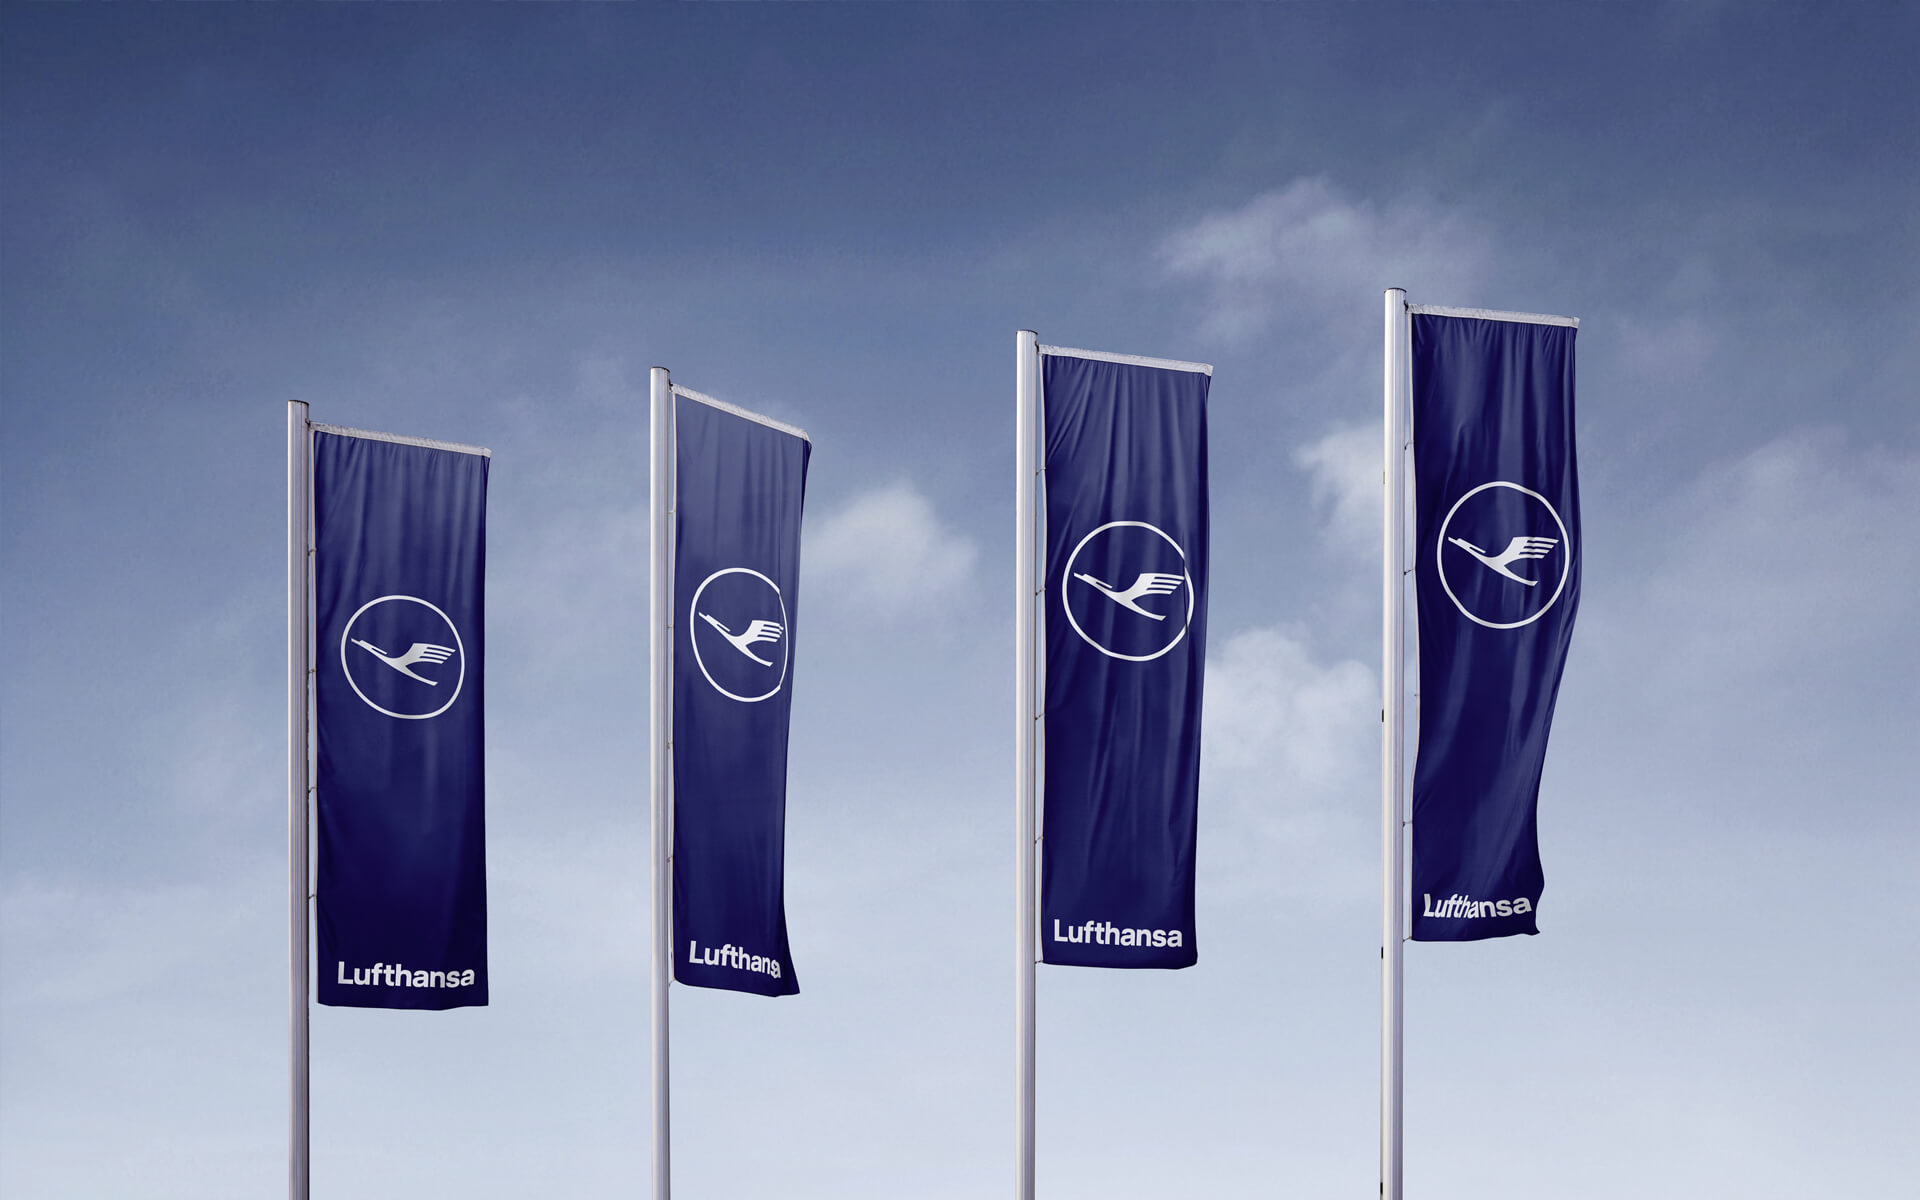 Lufthansa Corporate Design 2018, Redesign, Signage